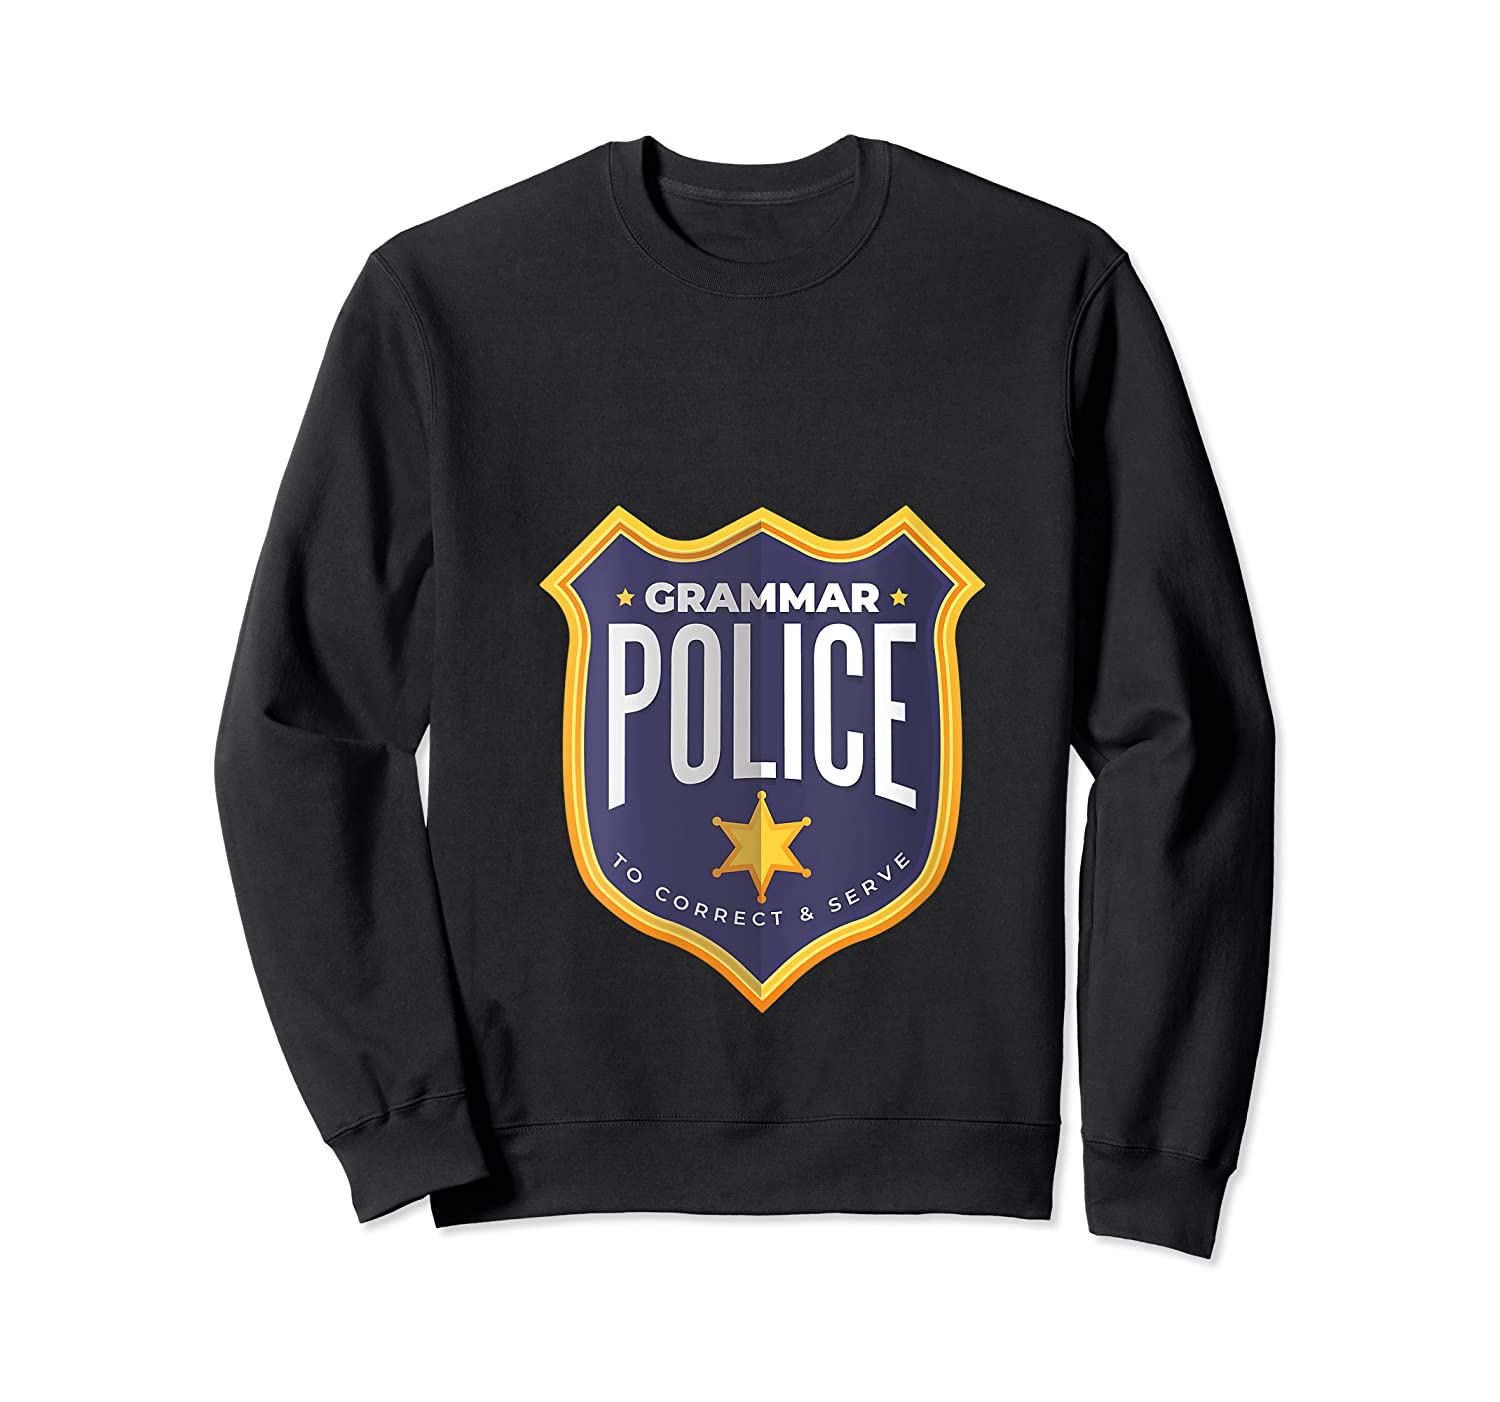 Grammar Police To Correct And Serve Shield Badge T Shirt Crewneck Sweater